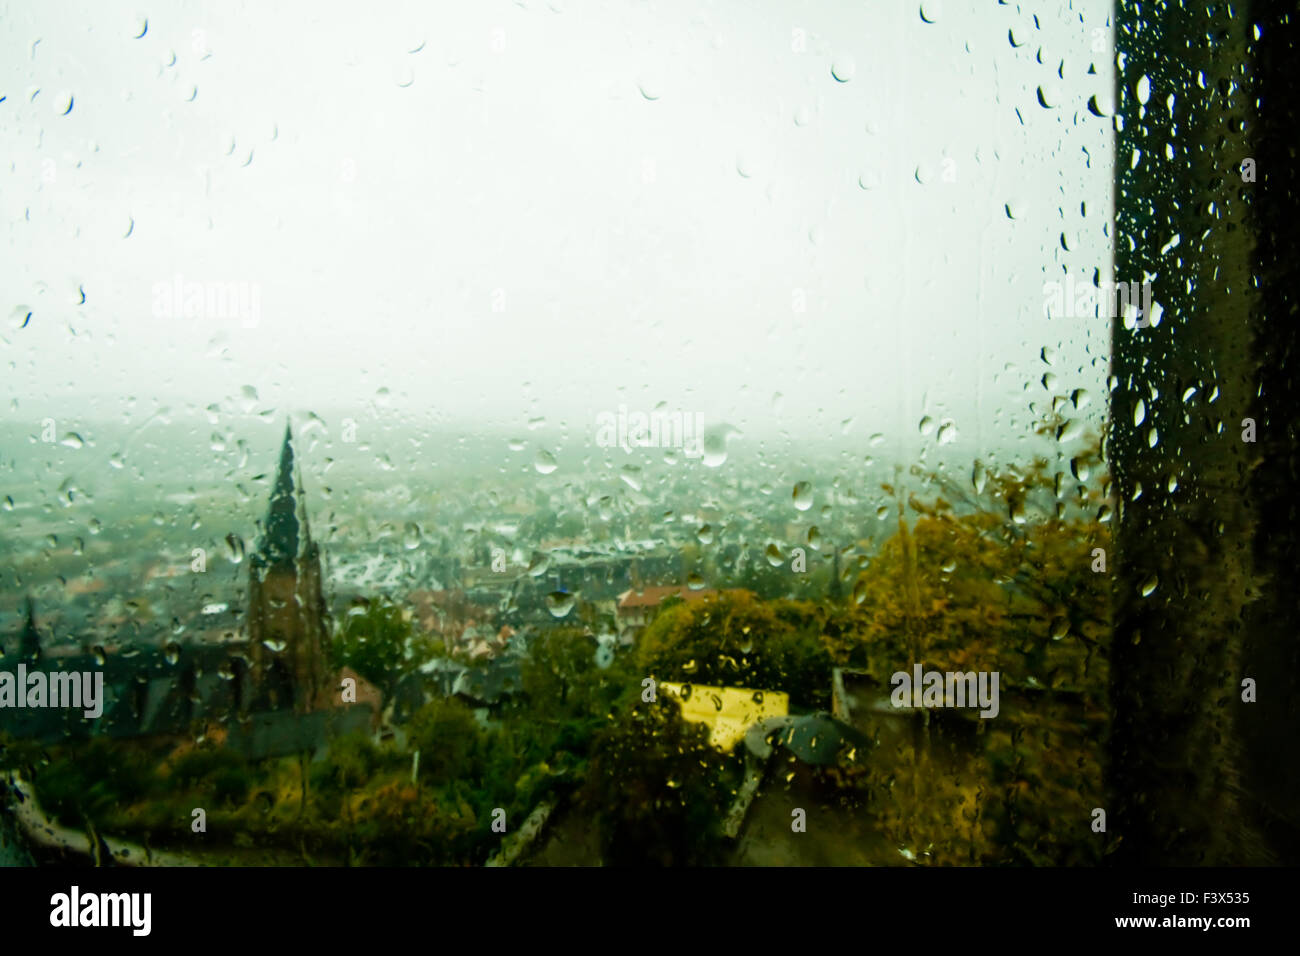 Marburg stockfotos marburg bilder seite 2 alamy - Fenster marburg ...